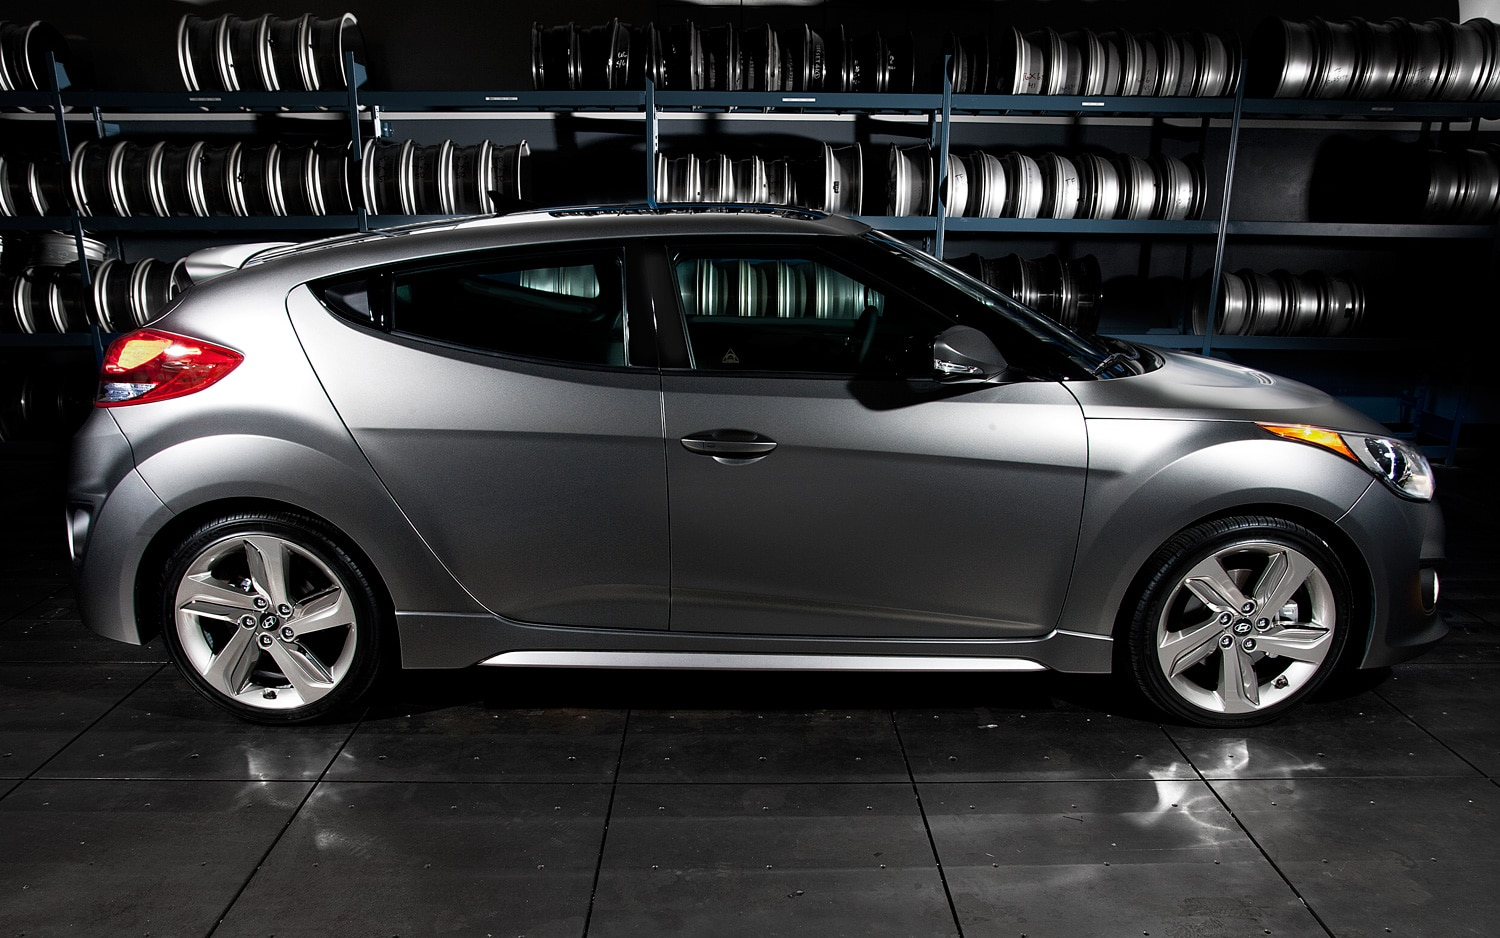 2013 Hyundai Veloster Turbo Profile1